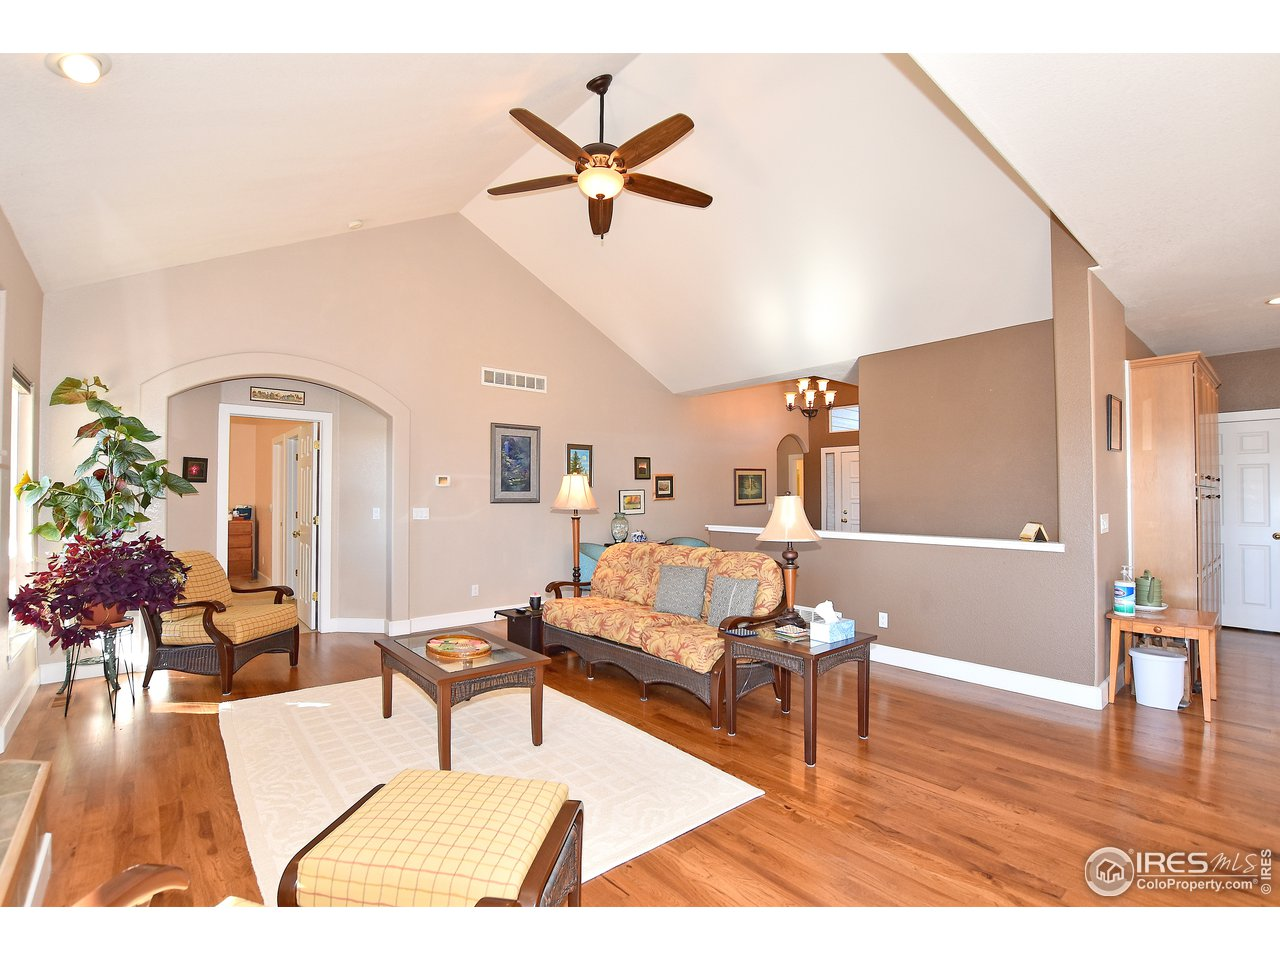 Great looking hardwood floors in main living area